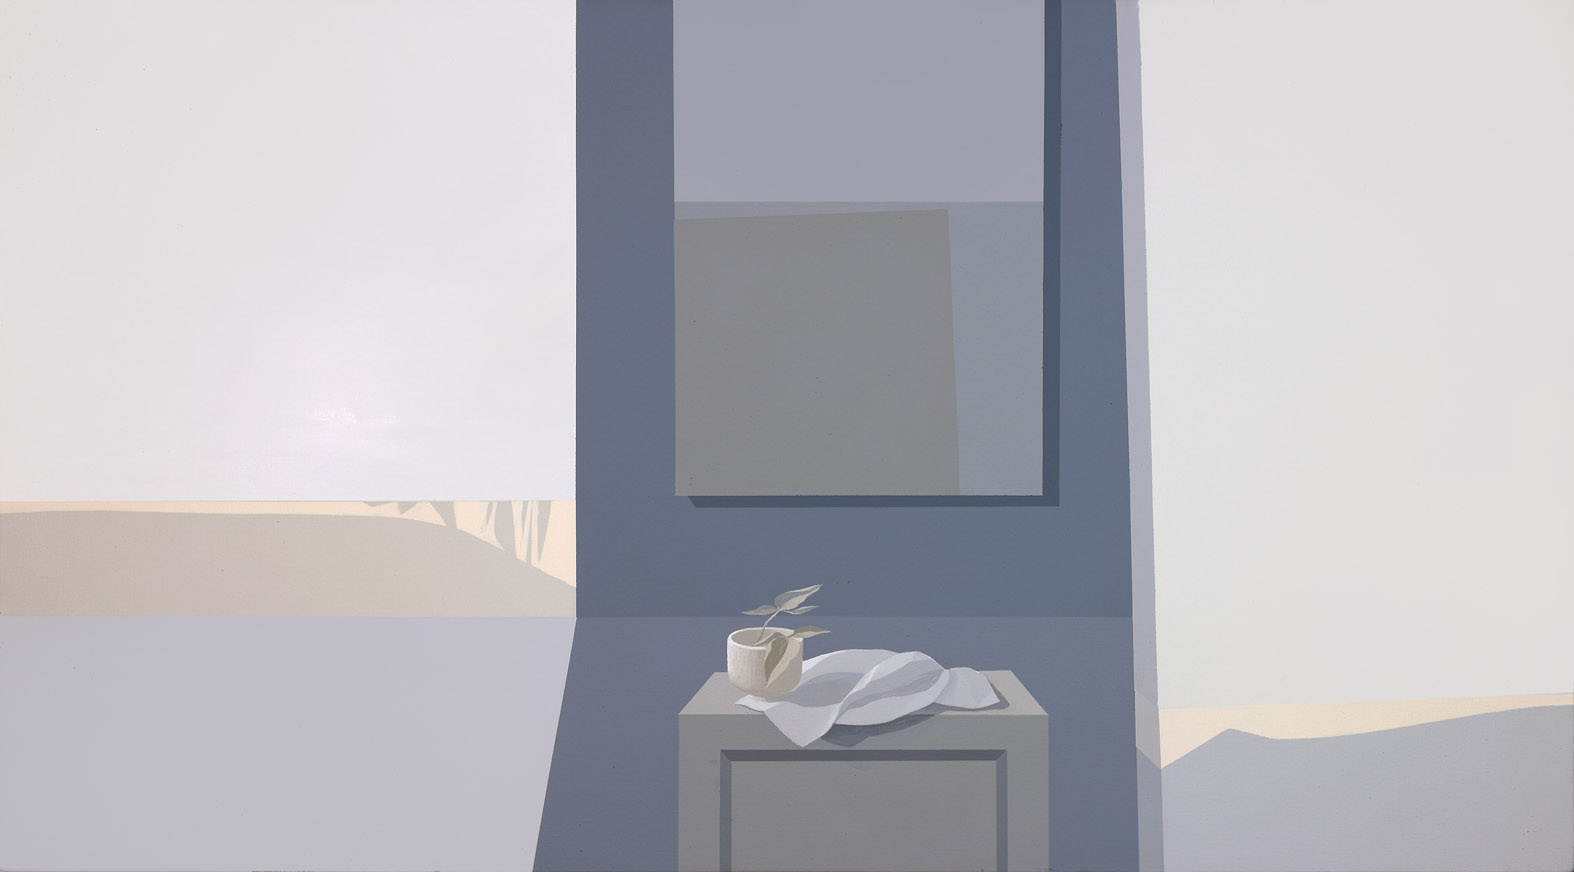 Grey Interior V,  1981 acrylic on canvas 30 x 54 inches; 76.2 x 137.2 centimeters  Private Collection, Los Angeles,